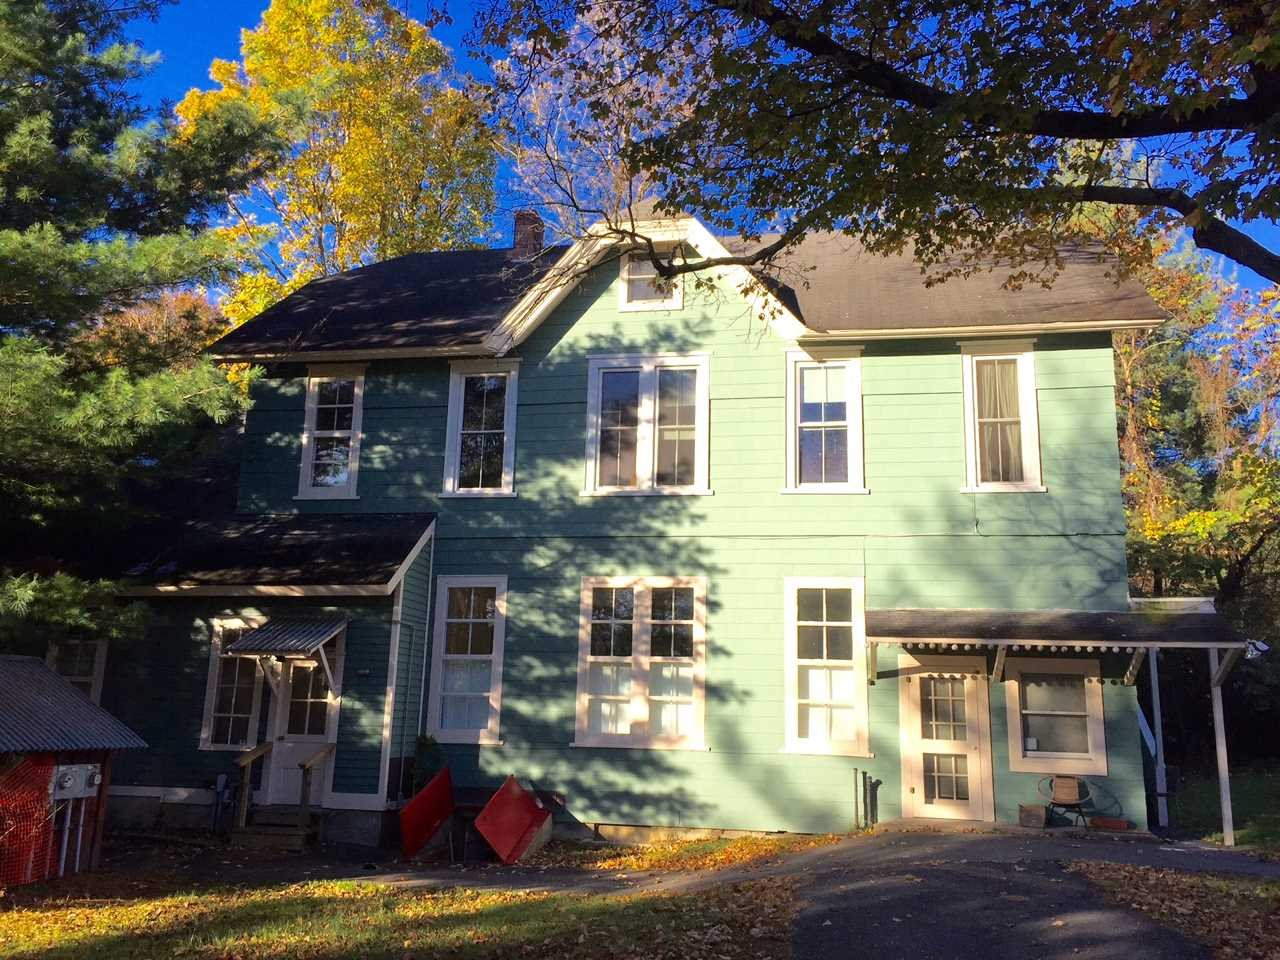 Single Family Home for Rent at 123 OLD POST ROAD 123 OLD POST ROAD Red Hook, New York 12571 United States